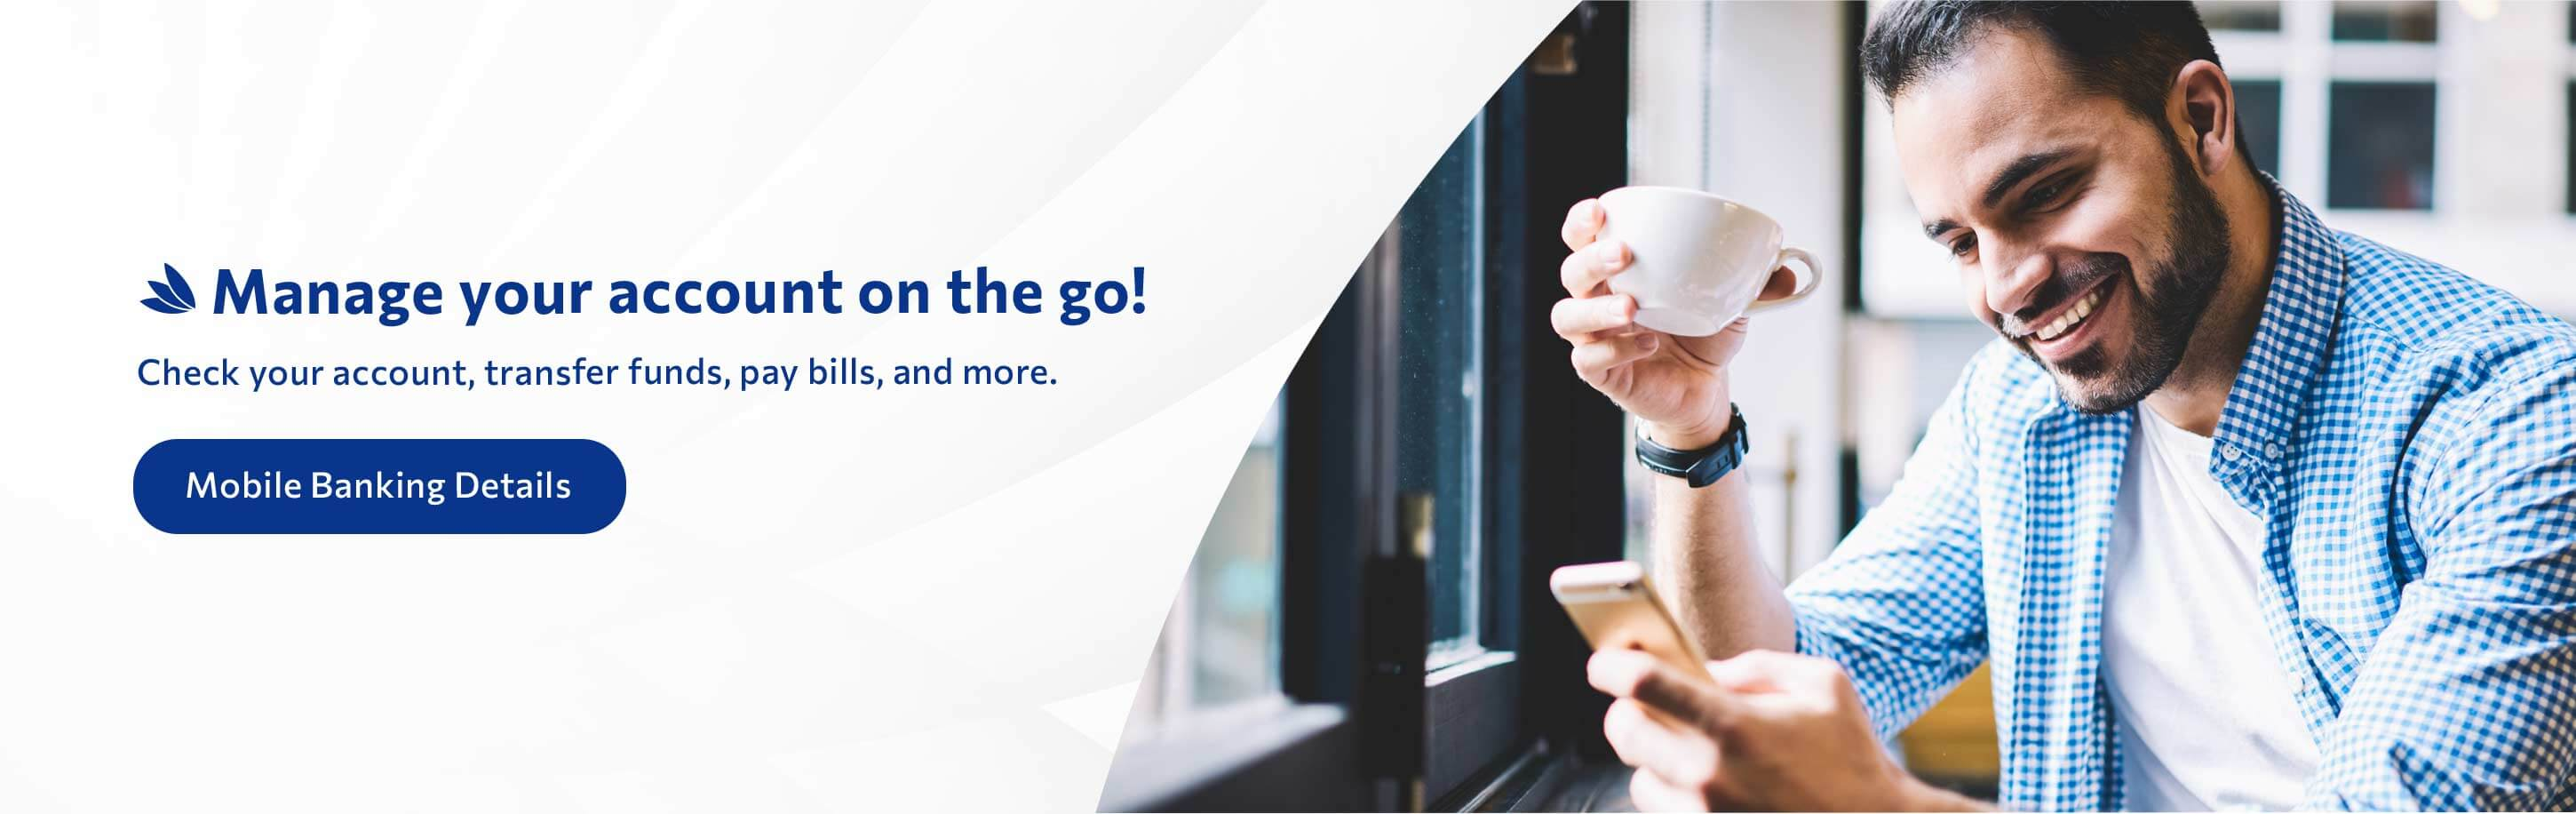 Manage your account on the go! Check your account, transfer funds, pay bills, and more. Mobile Banking Details.